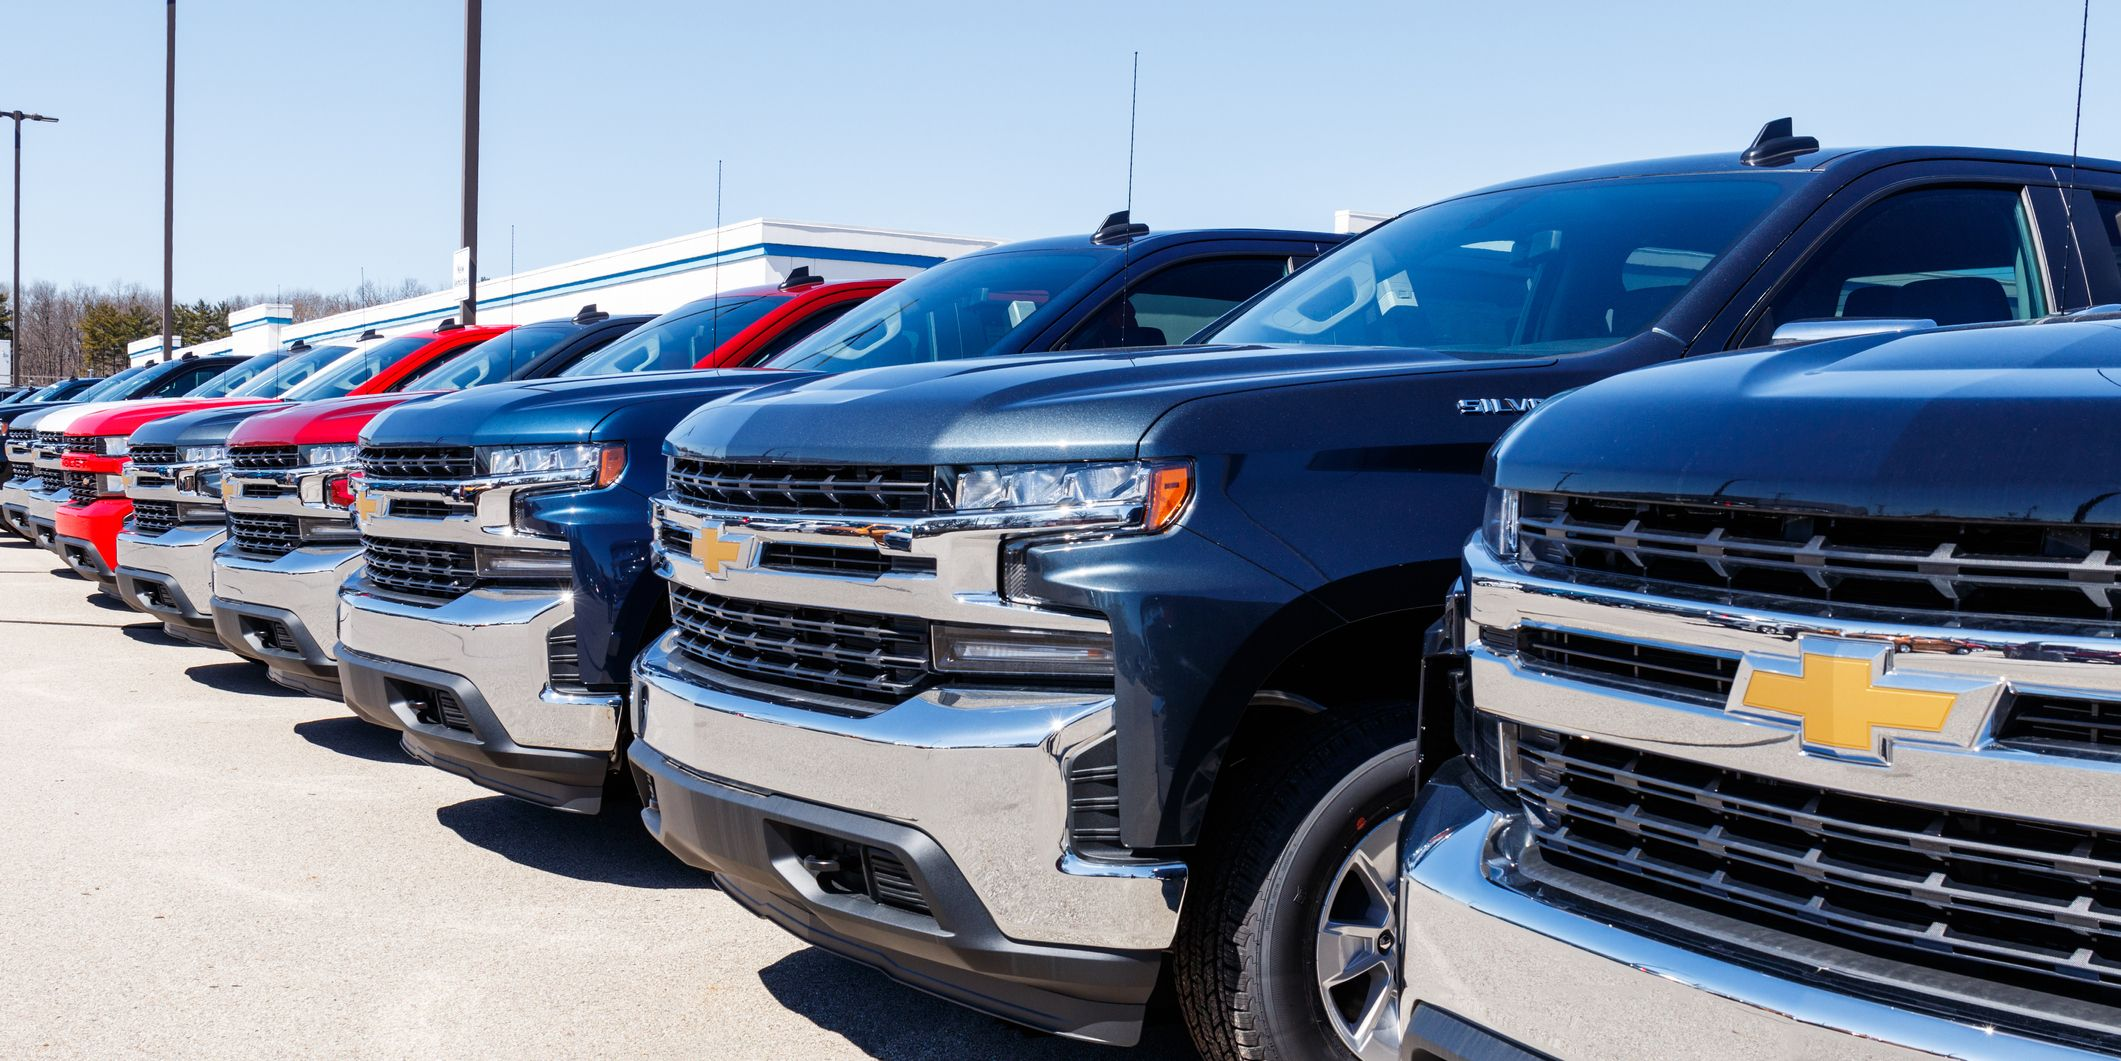 GM Will Offer No-Interest Loans as Part of Coronavirus Aid Plan